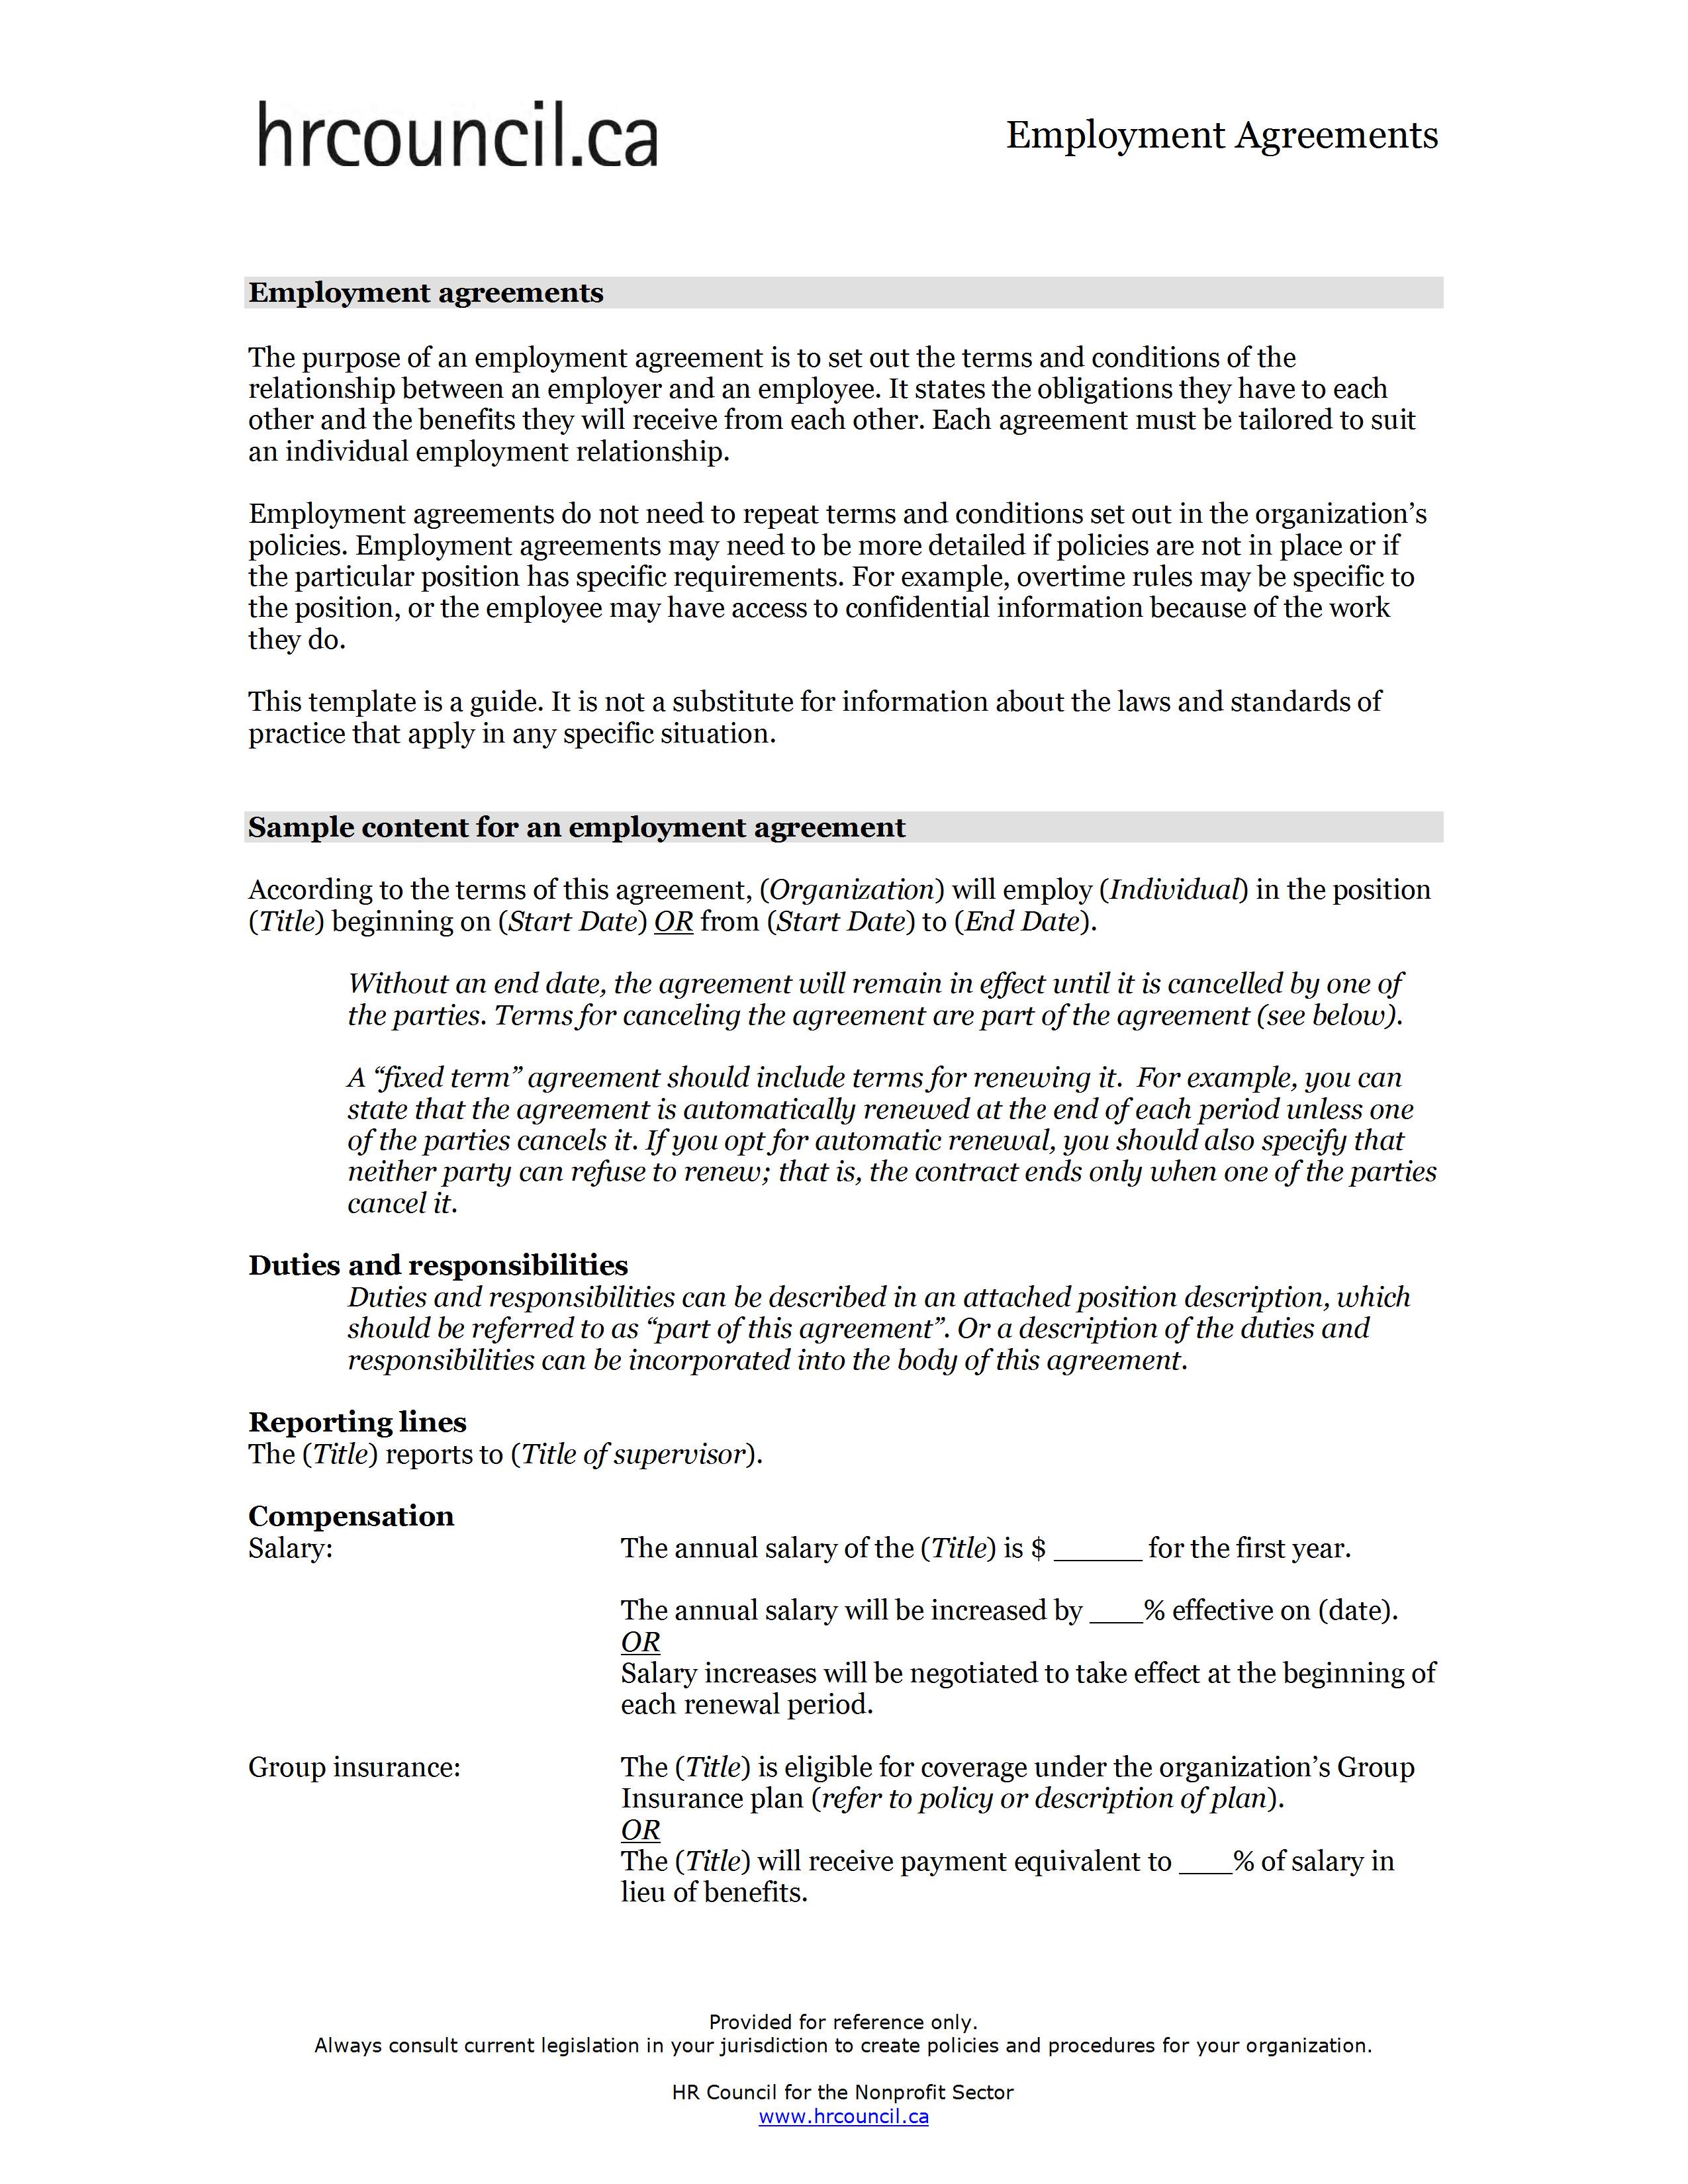 Employment Contract Template Word Archives Freewordtemplates Net